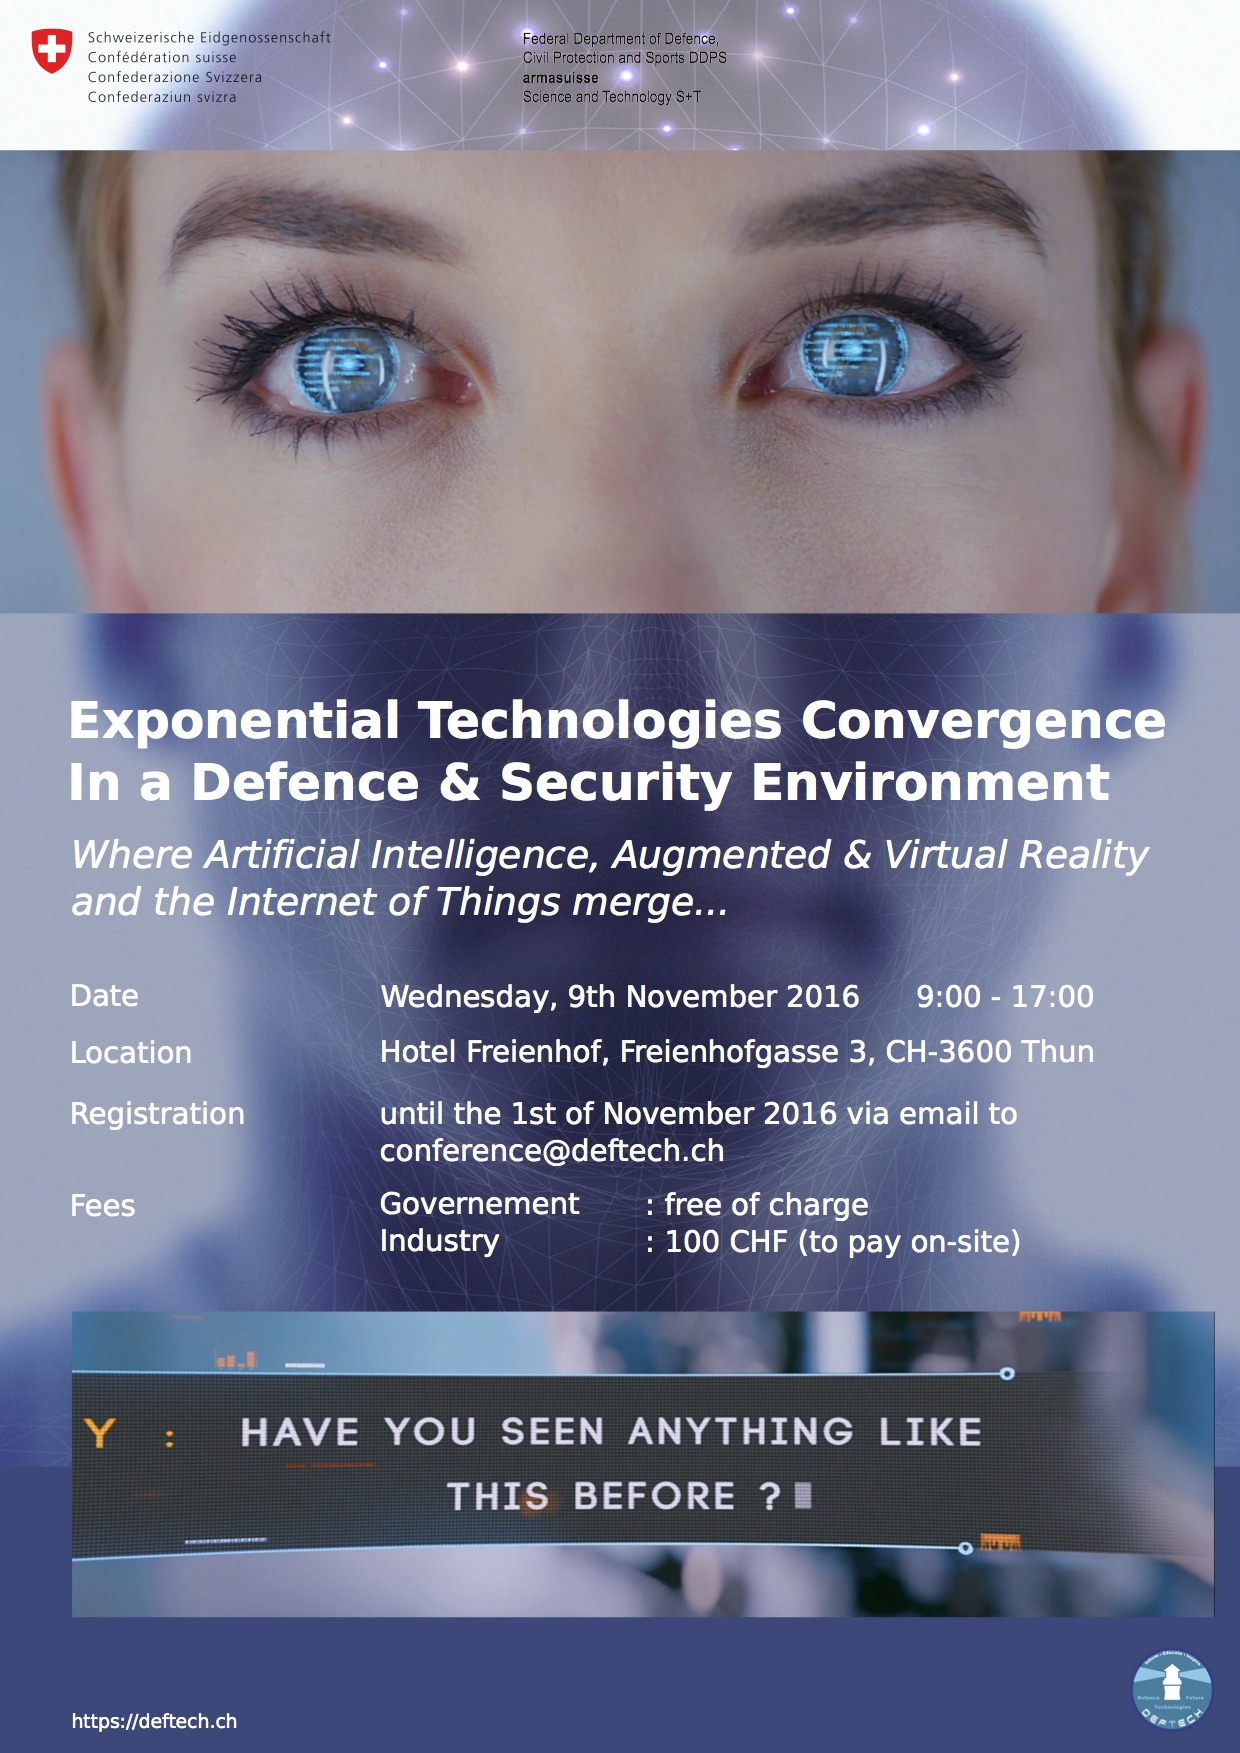 ExponentialTechnologies_9th_November_2016